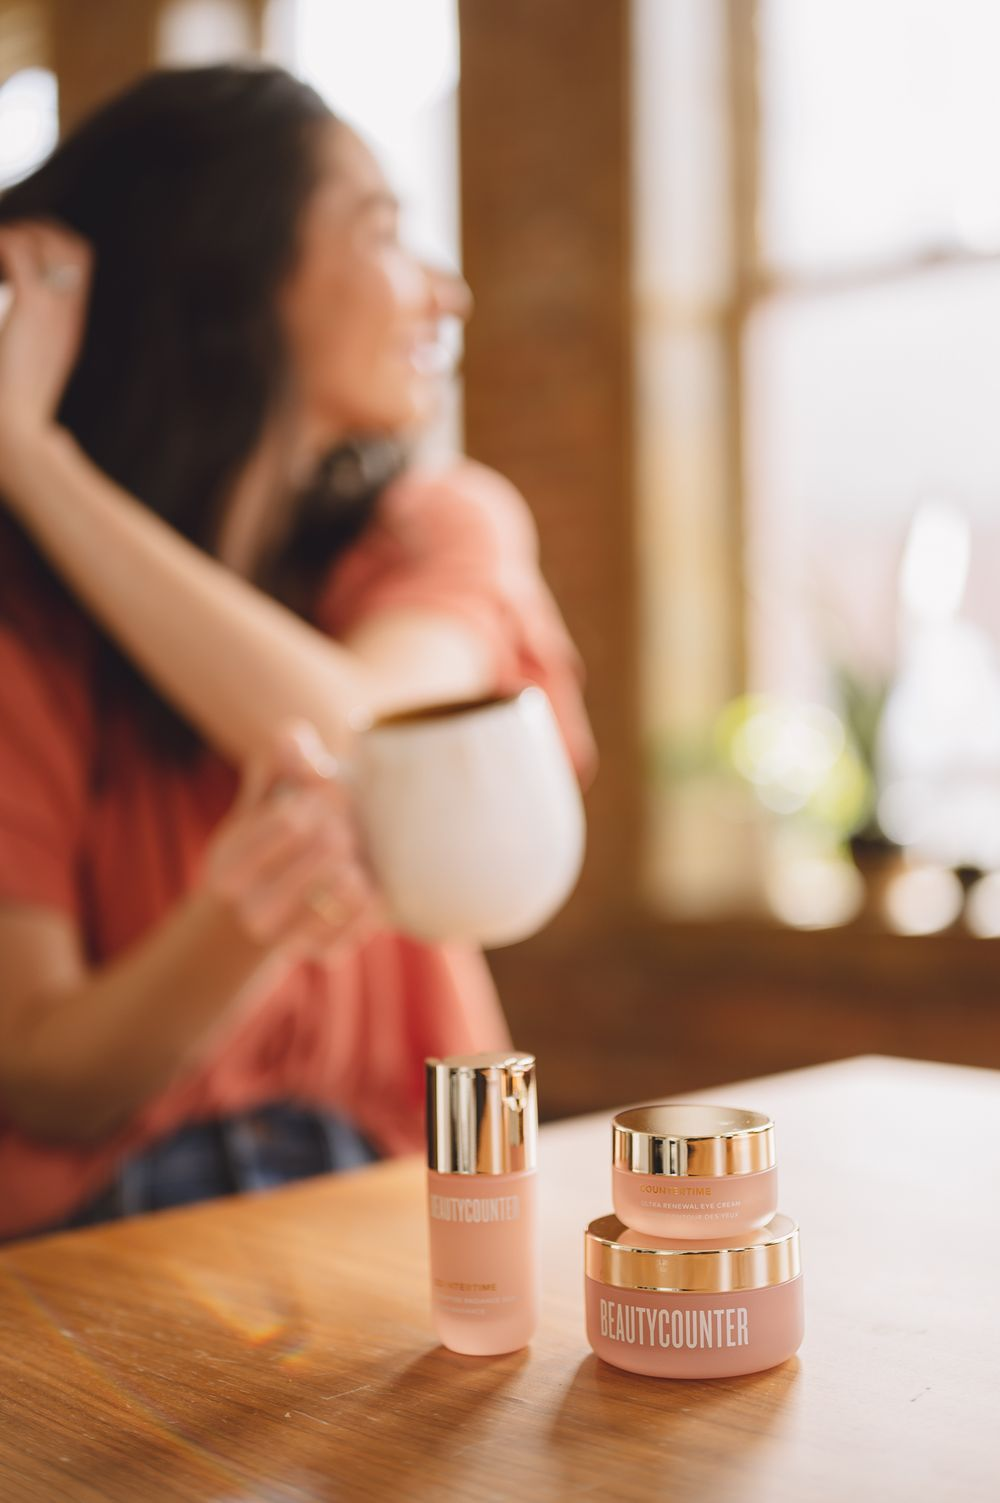 brand portrait by Tiffany Kelterer of Beautycounter product on table with blurred woman in background drinking coffee